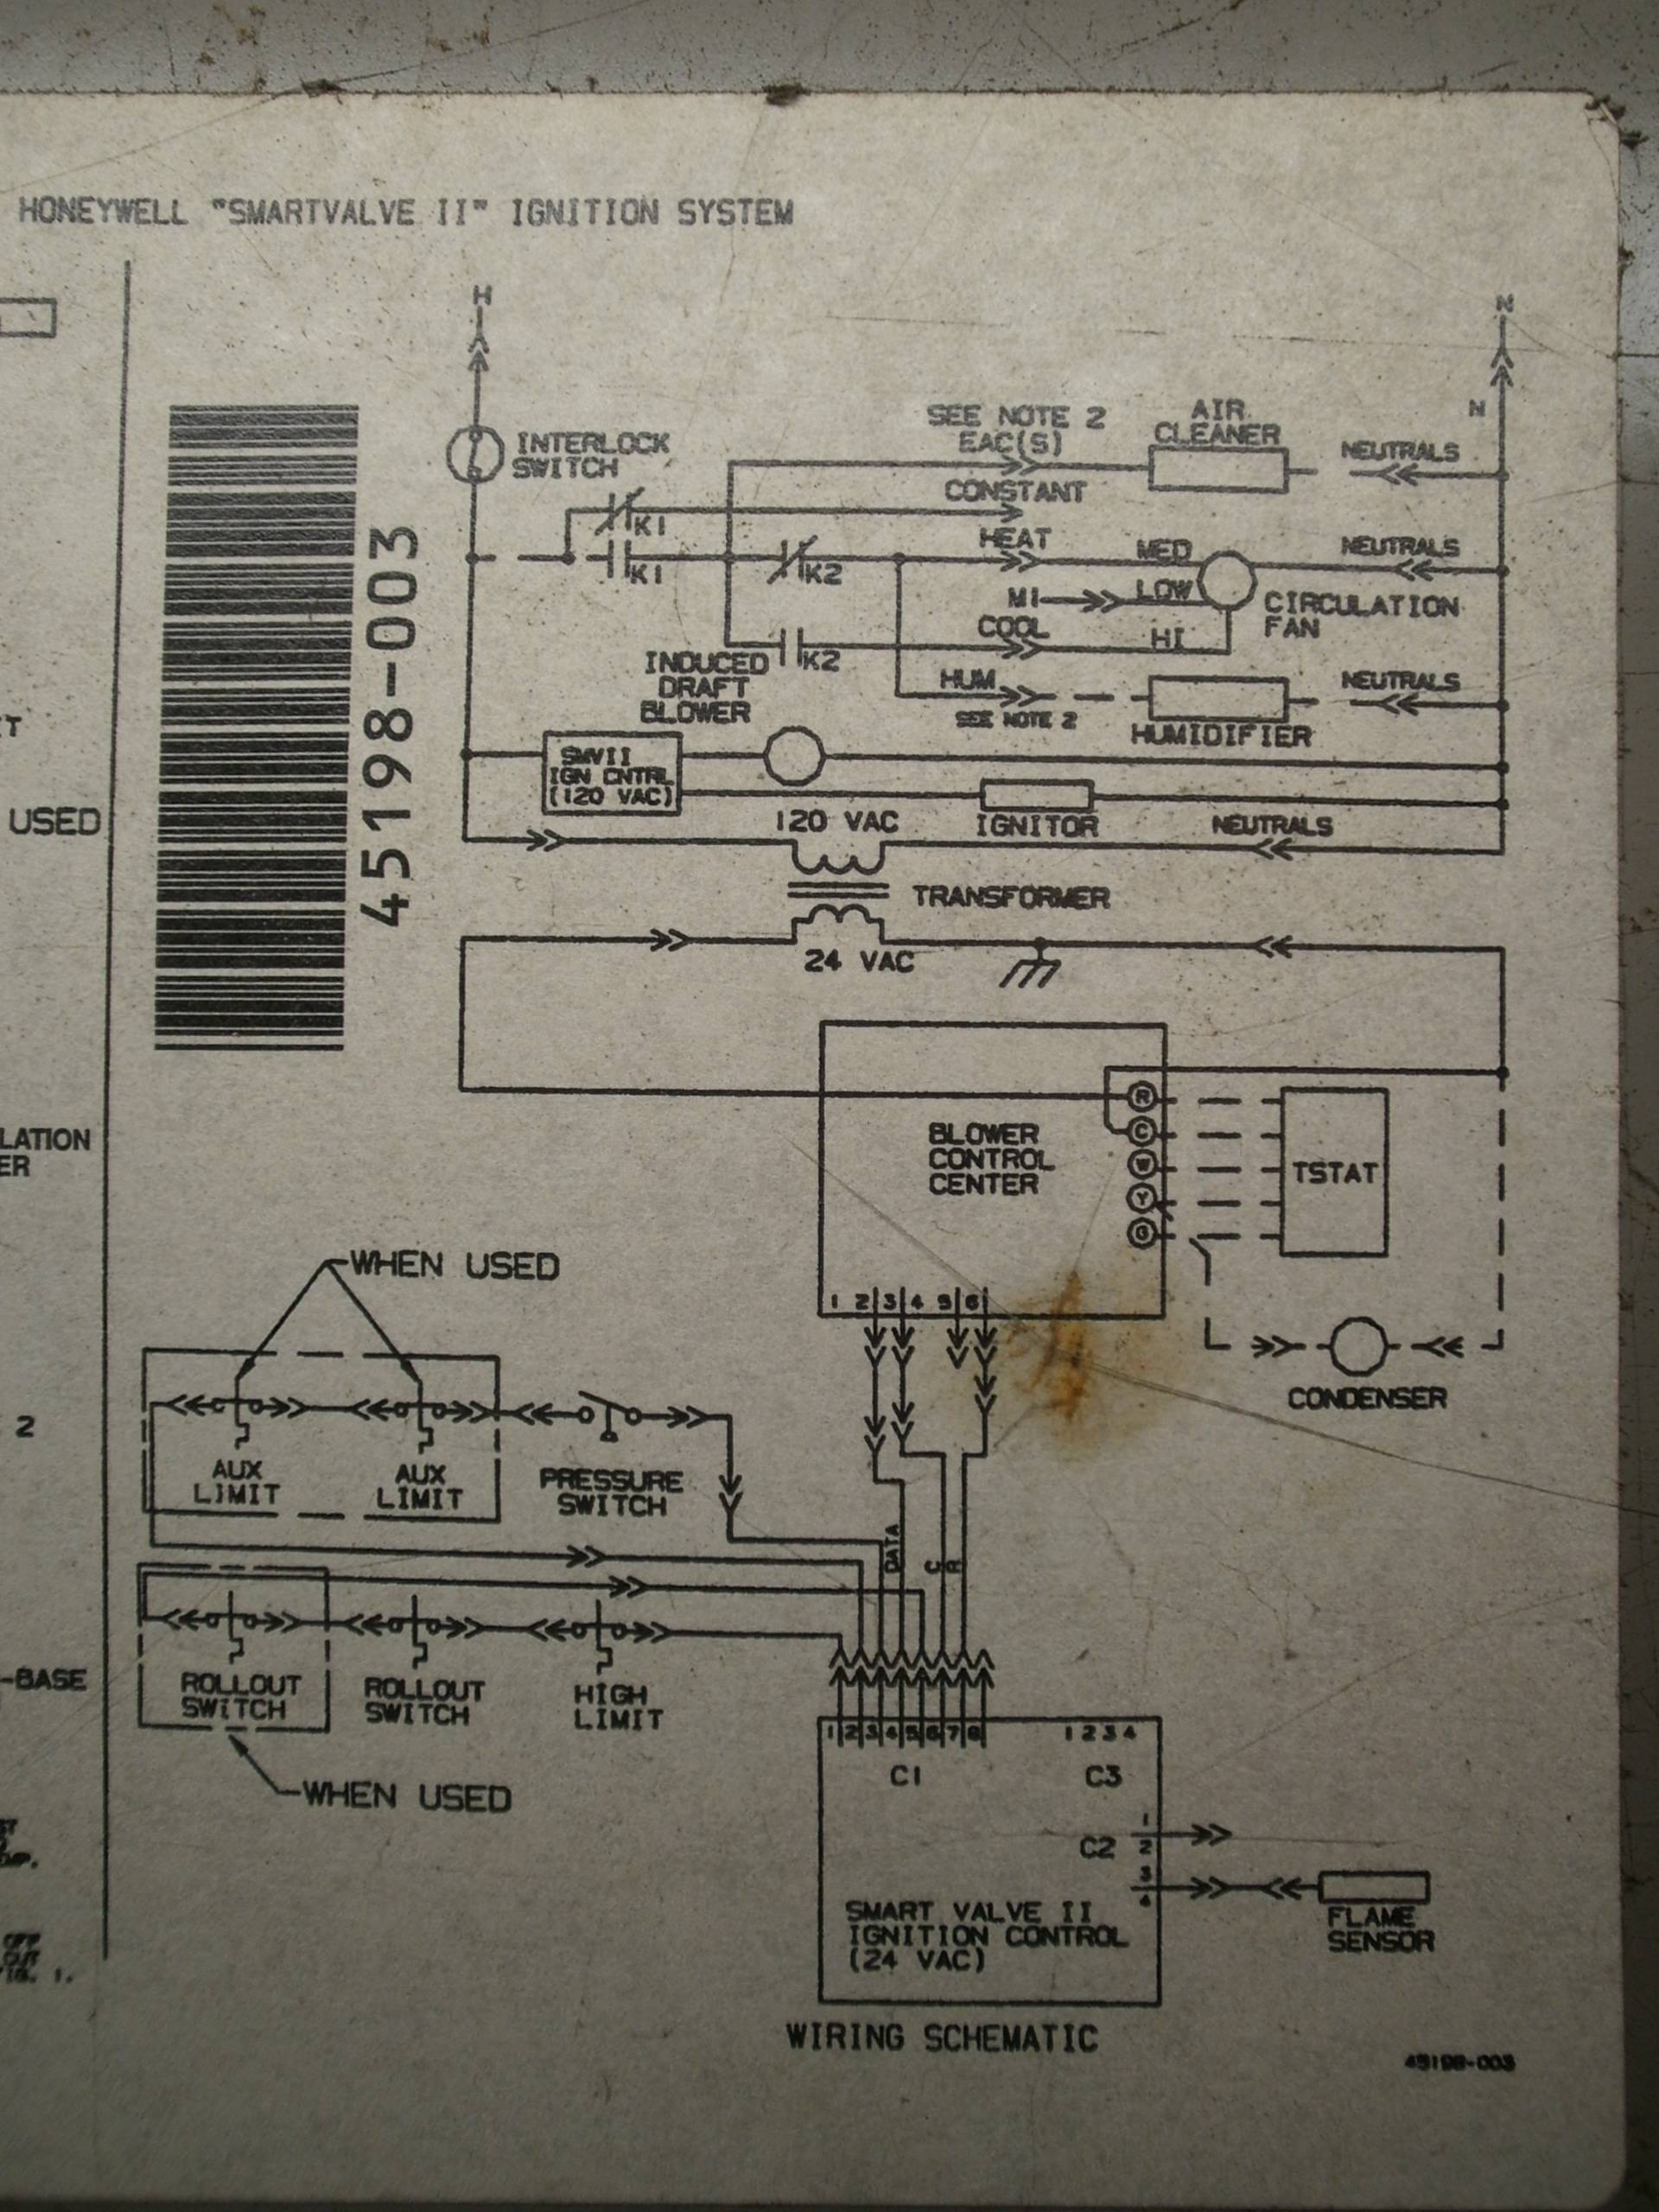 motor control center wiring diagram studor installation hvac - troubleshoot ac issue, no inside blower home improvement stack exchange